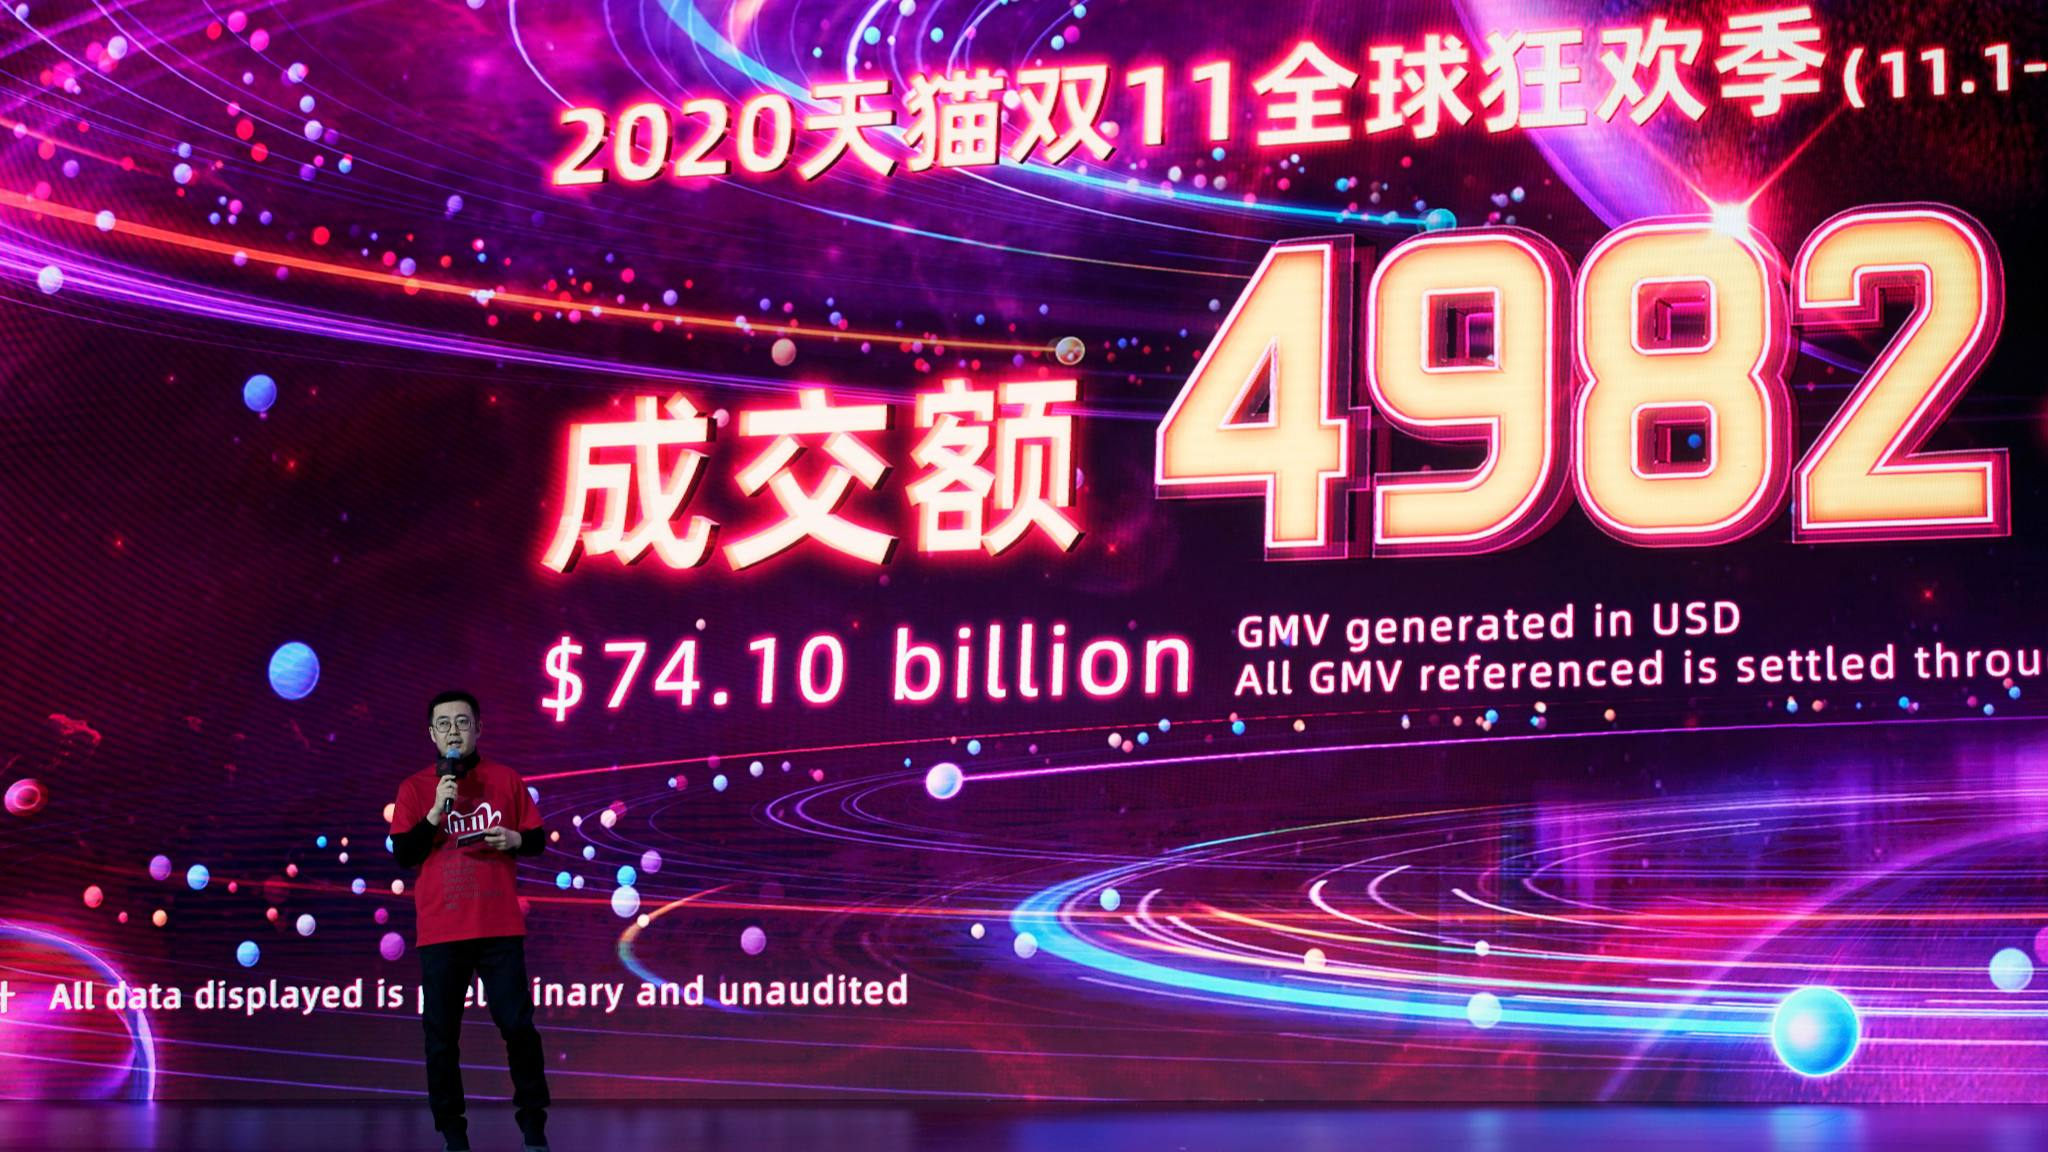 """This week's top news in logistics: """"Singles day"""" generates record $75B for Alibaba, massive An-124-100 freighter damaged in 911 landing, DHL expects December 21 to be peak delivery day, US Retailers bring back purchase limits amid COVID-19 surge & Walmart adds pop-up D2C fulfillment capacity at 42 distribution centers."""